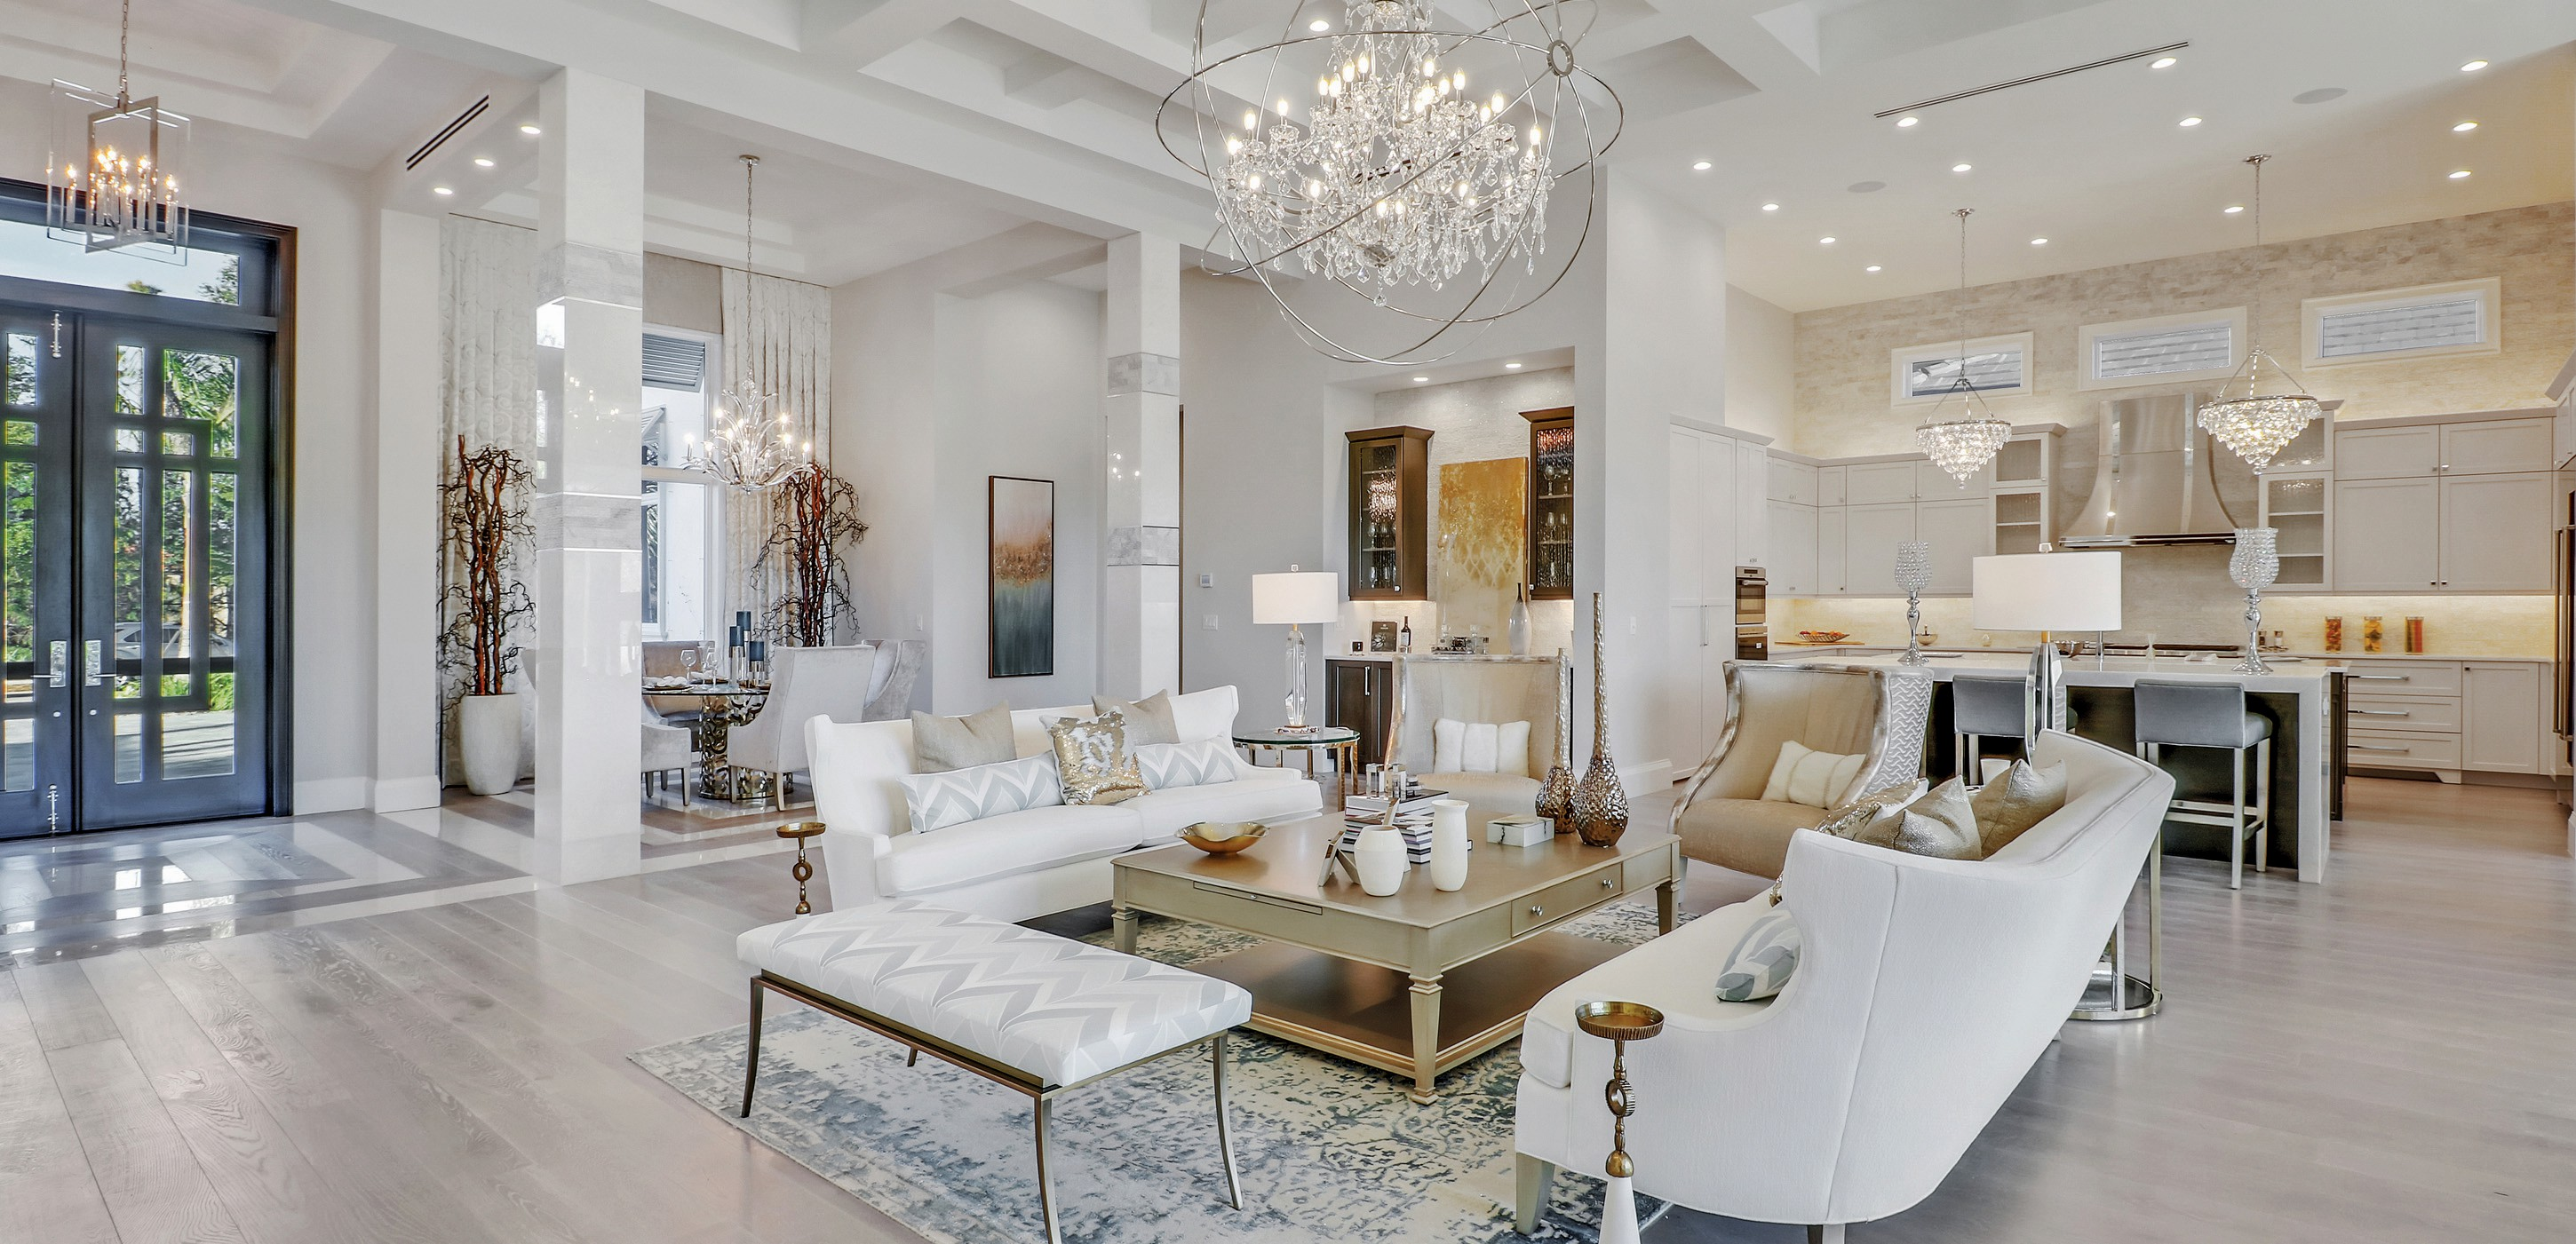 This weekend: Talis Park's February Luxury Home Tour highlights  new-fashioned lifestyle, award-winning homes | Naples Florida Weekly